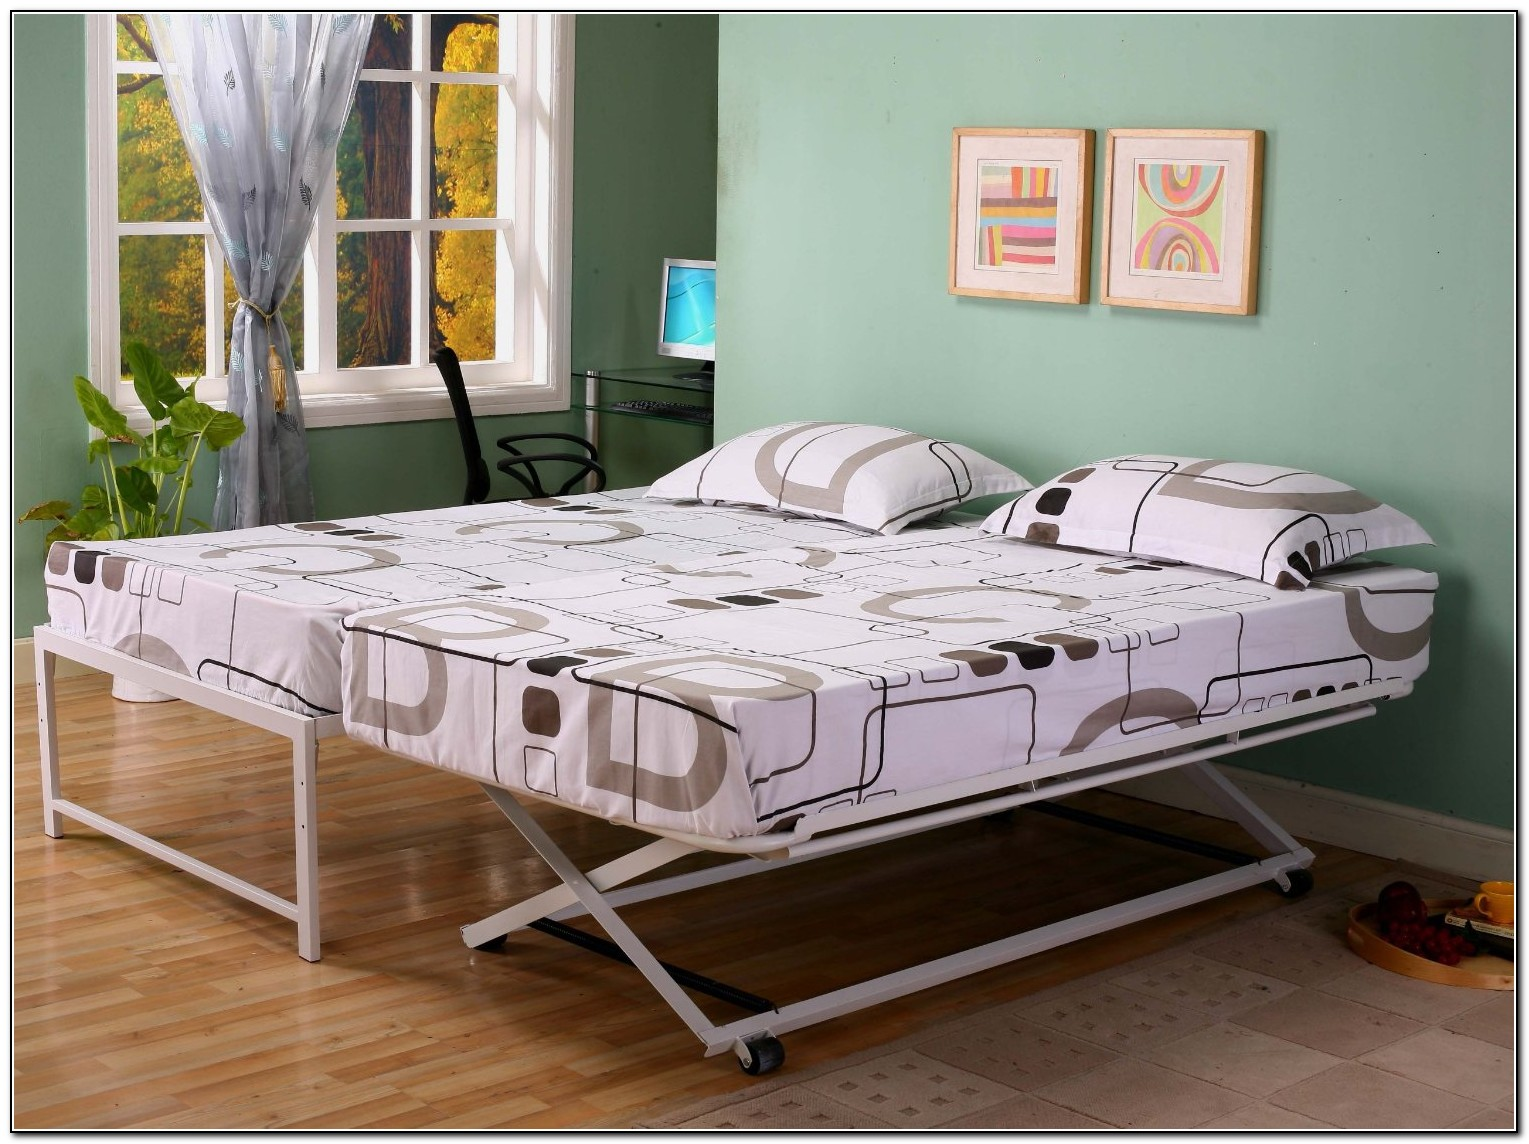 Pop up trundle bed ikea beds home design ideas for Trundle mattress ikea